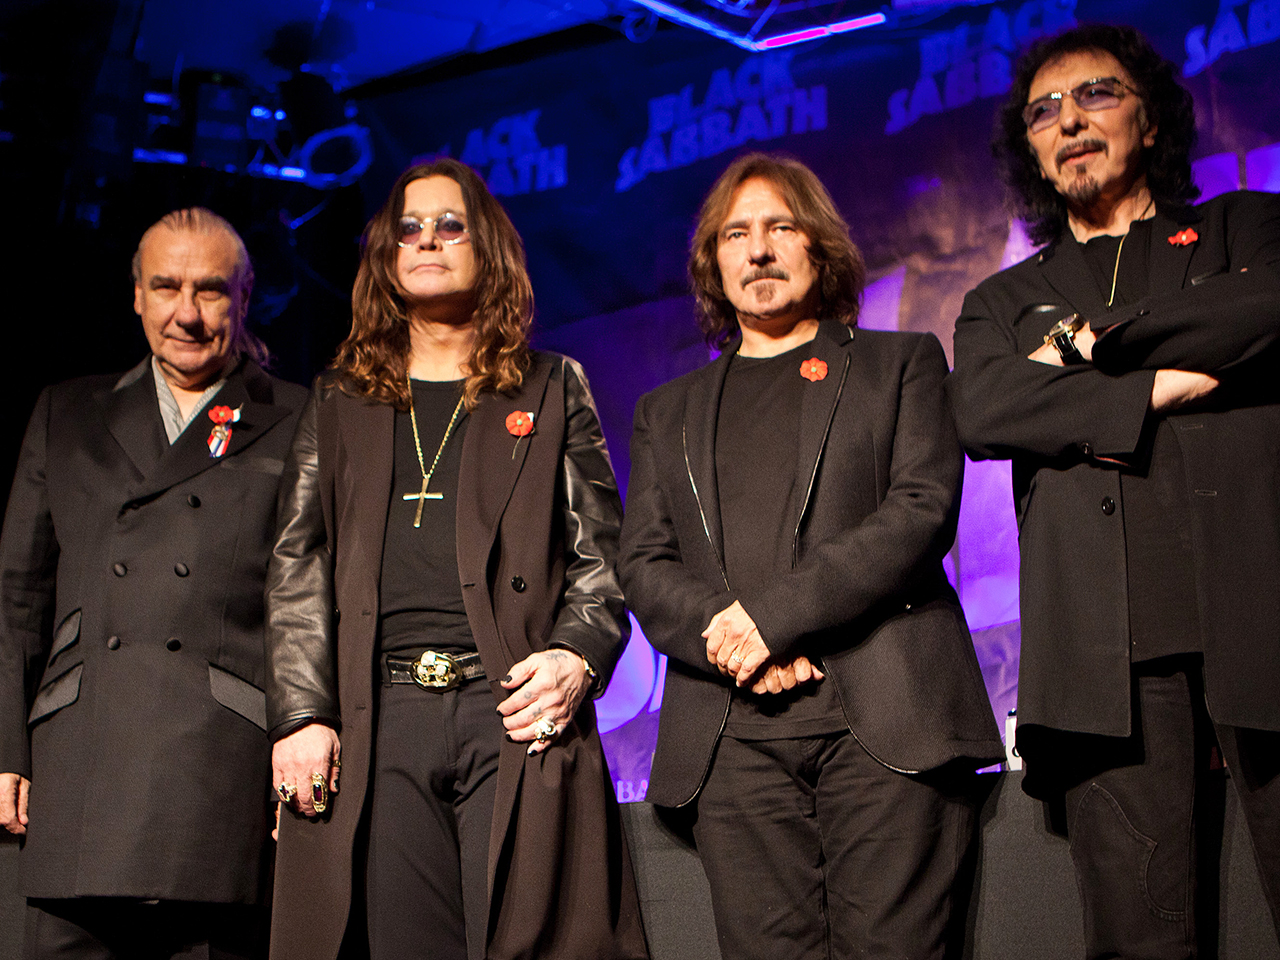 Bill Ward, Ozzy Osbourne, Geezer Butler and Tony Iommi at the Black Sabbath Reunion Press Conference in 2011.